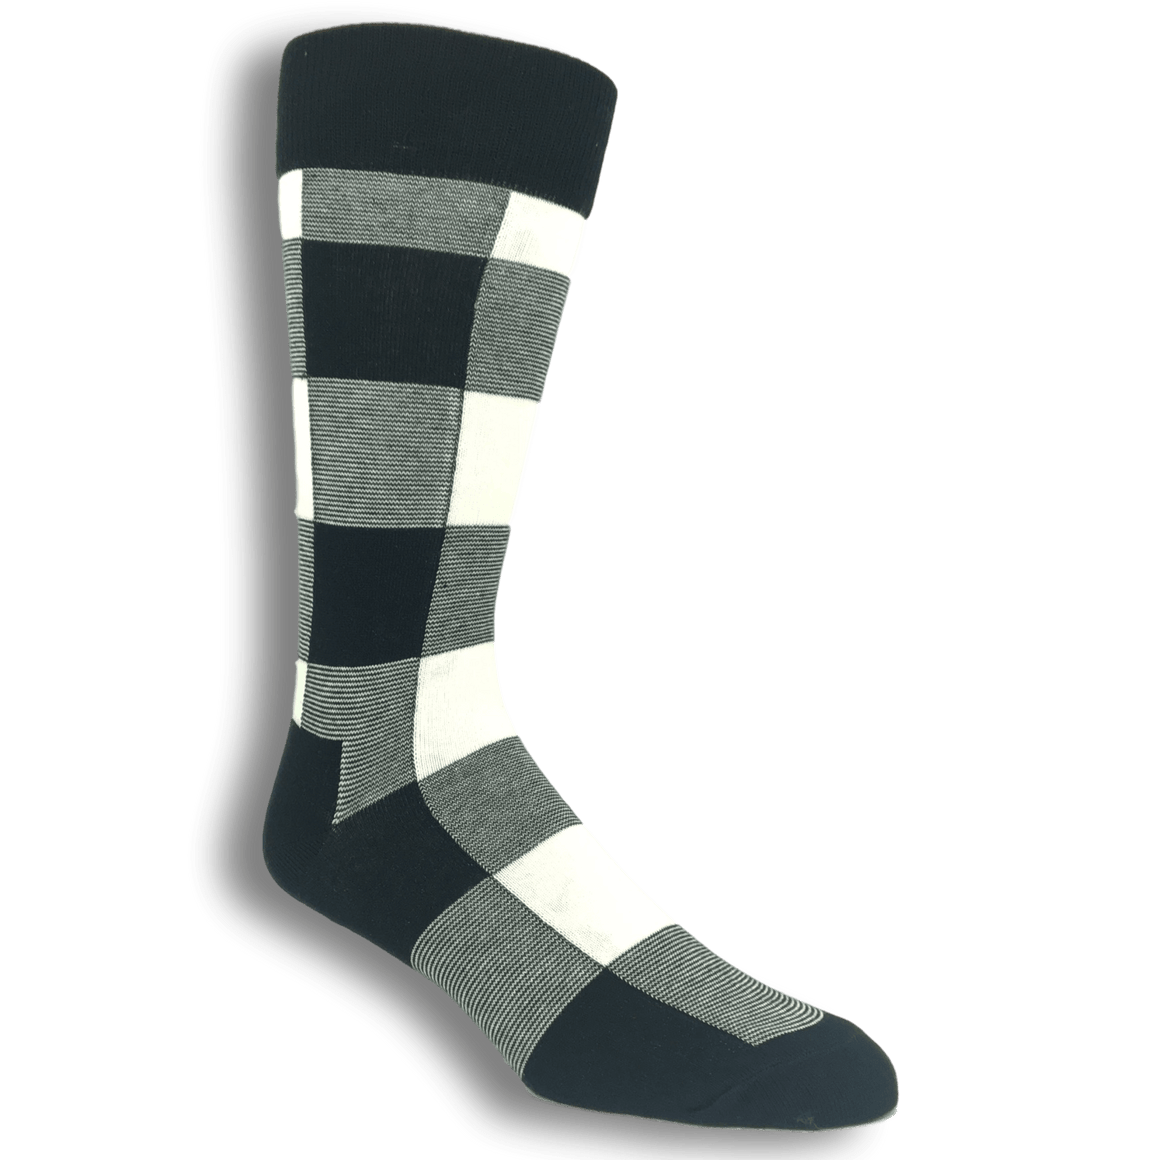 Black and White Lumberjack Socks by Happy Socks - The Sock Spot